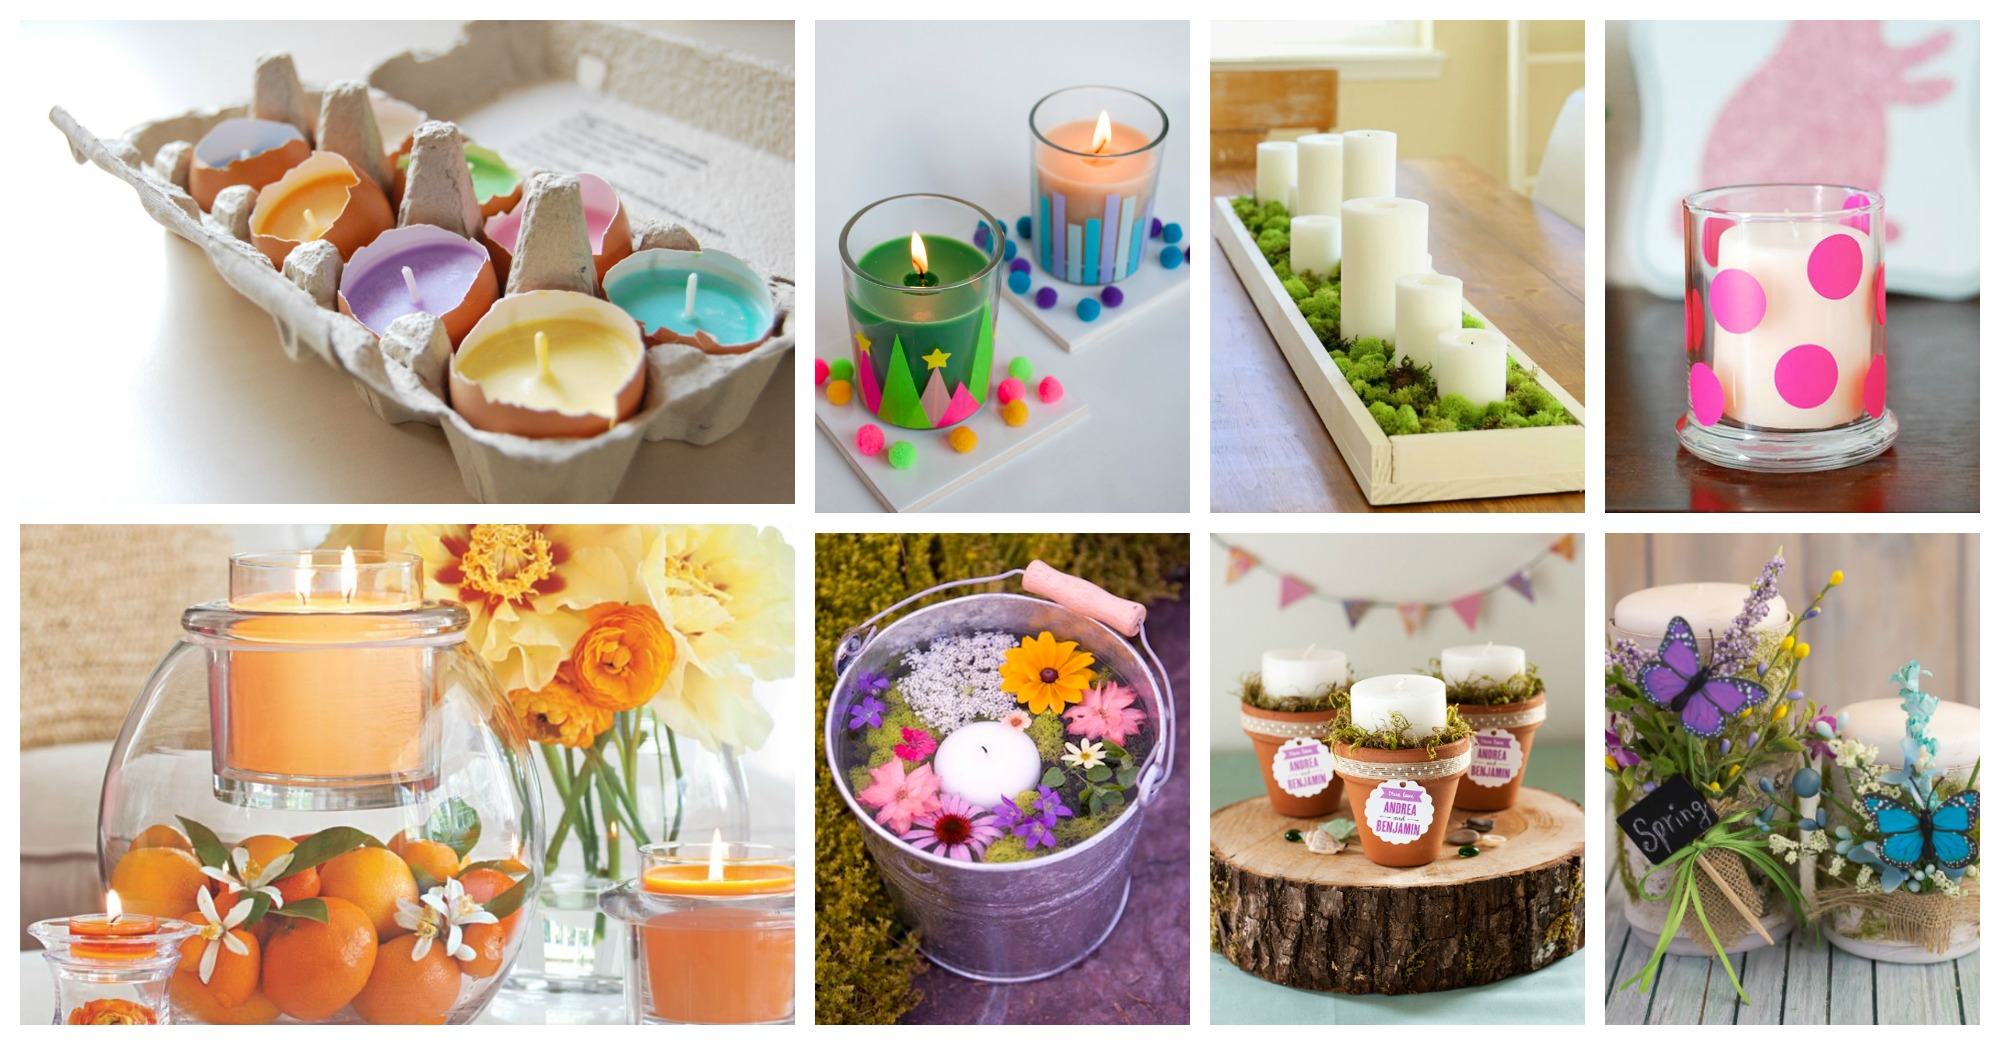 Adorable DIY Spring Candle Decorations That Will Make A Statement In Your Home